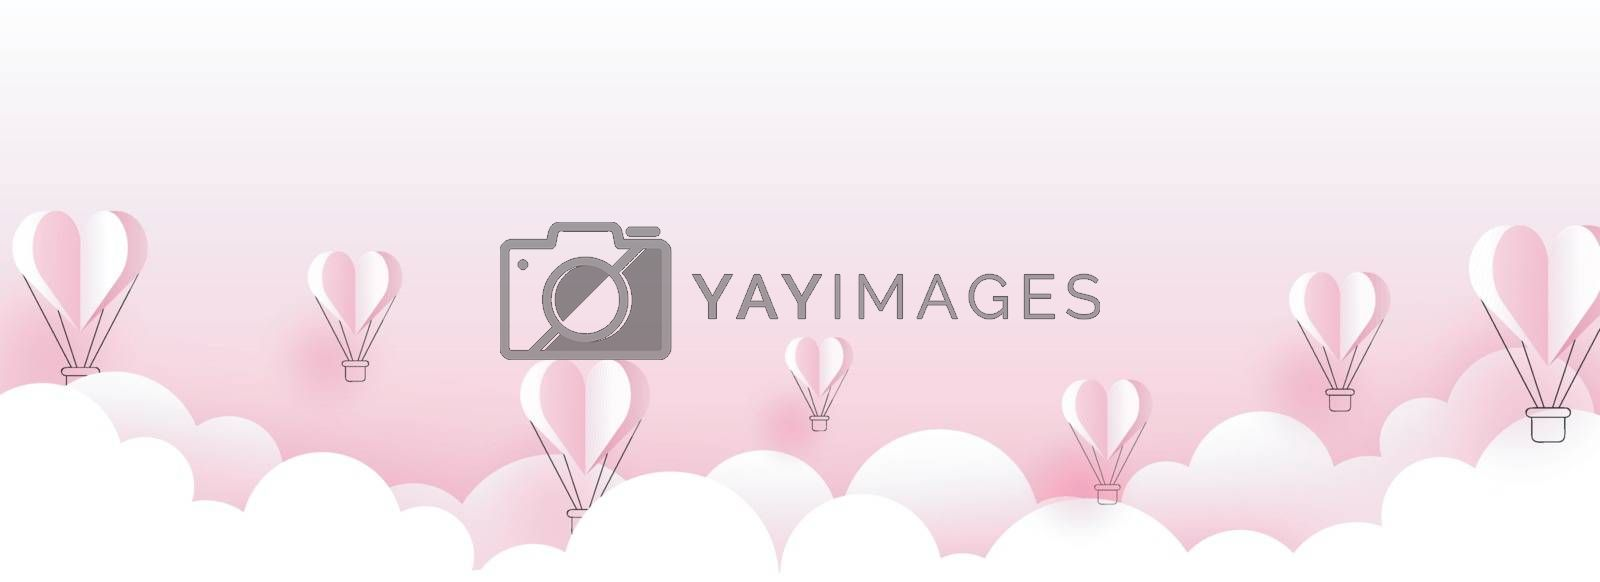 Paper cut style cloudy background with flying hot air balloons illustration for valentine's day header or banner design.